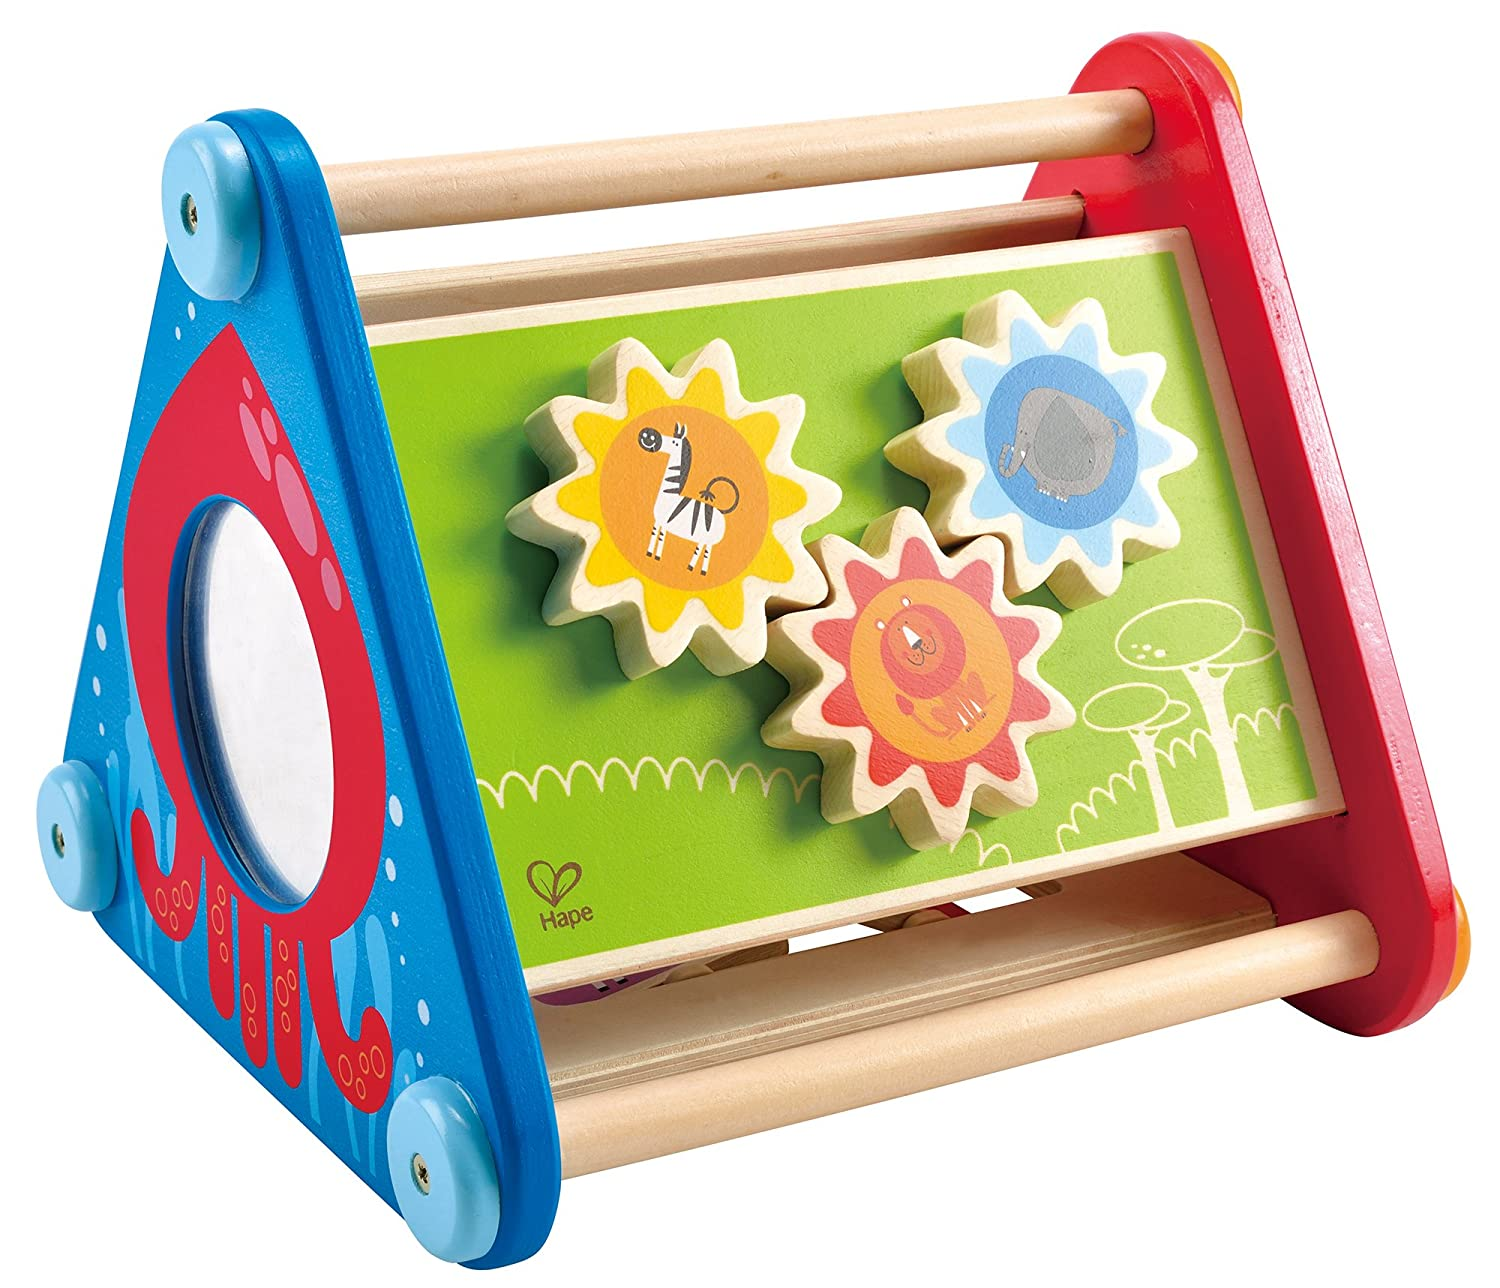 Amazon Hape Take Along Wooden Toddler Activity Skill Building